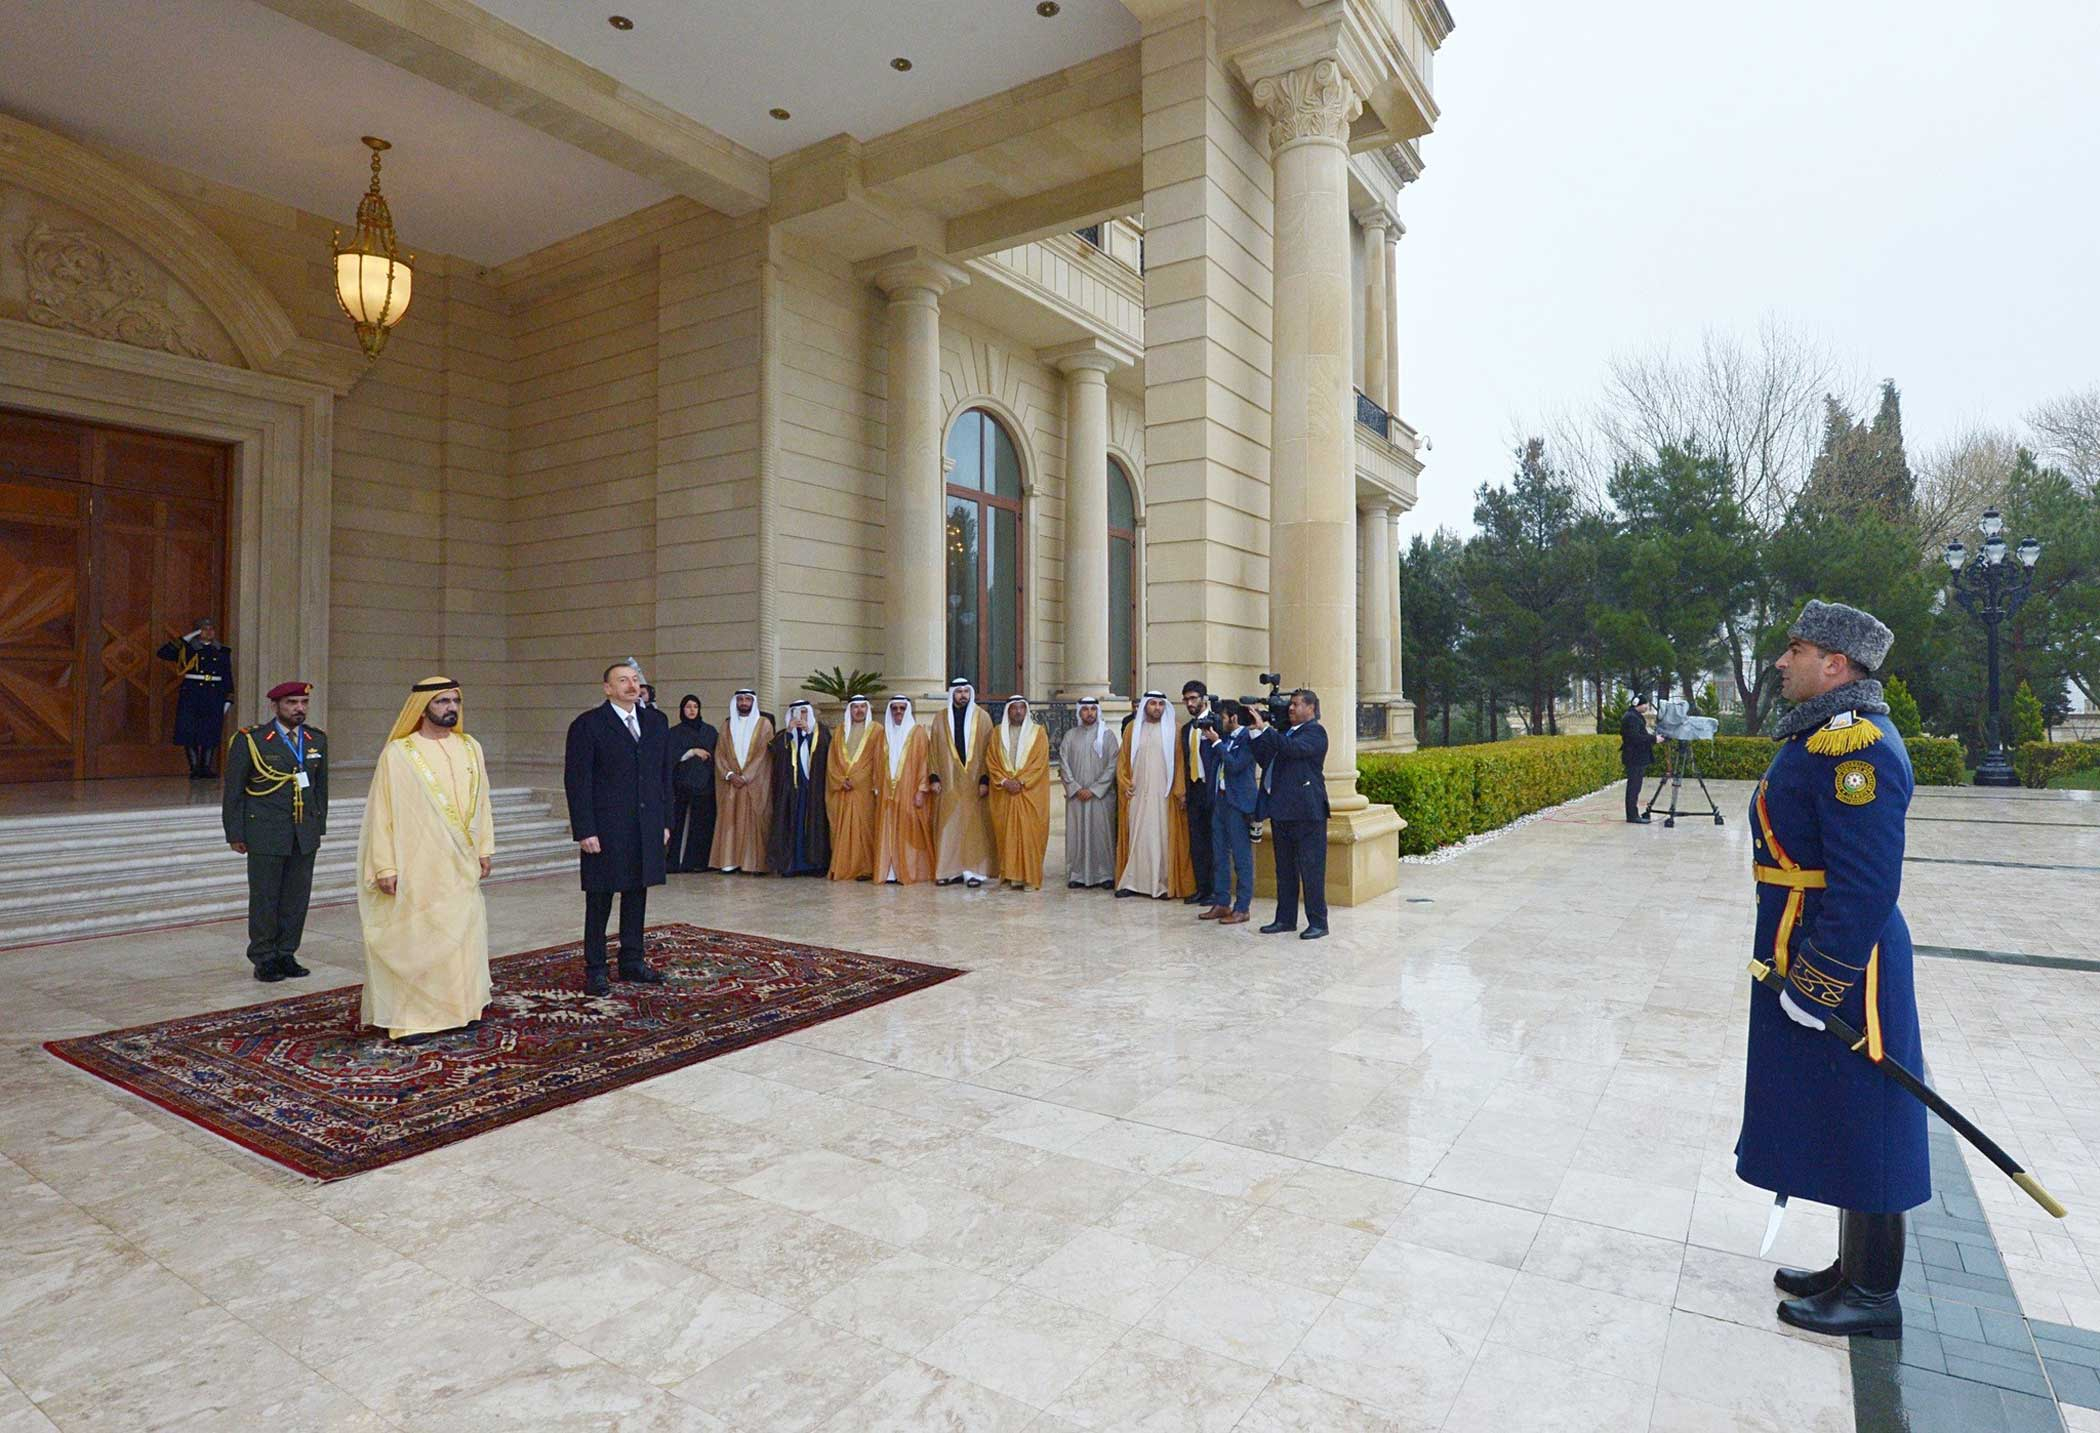 Vice President and Prime Minister of the United Arab Emirates (UAE) Mohammed bin Rashid Al Maktoum (L) is seen next to Azerbaijani President Ilham Aliyev (L 2) during his official visit in Baku, Azerbaijan on April 2, 2015.